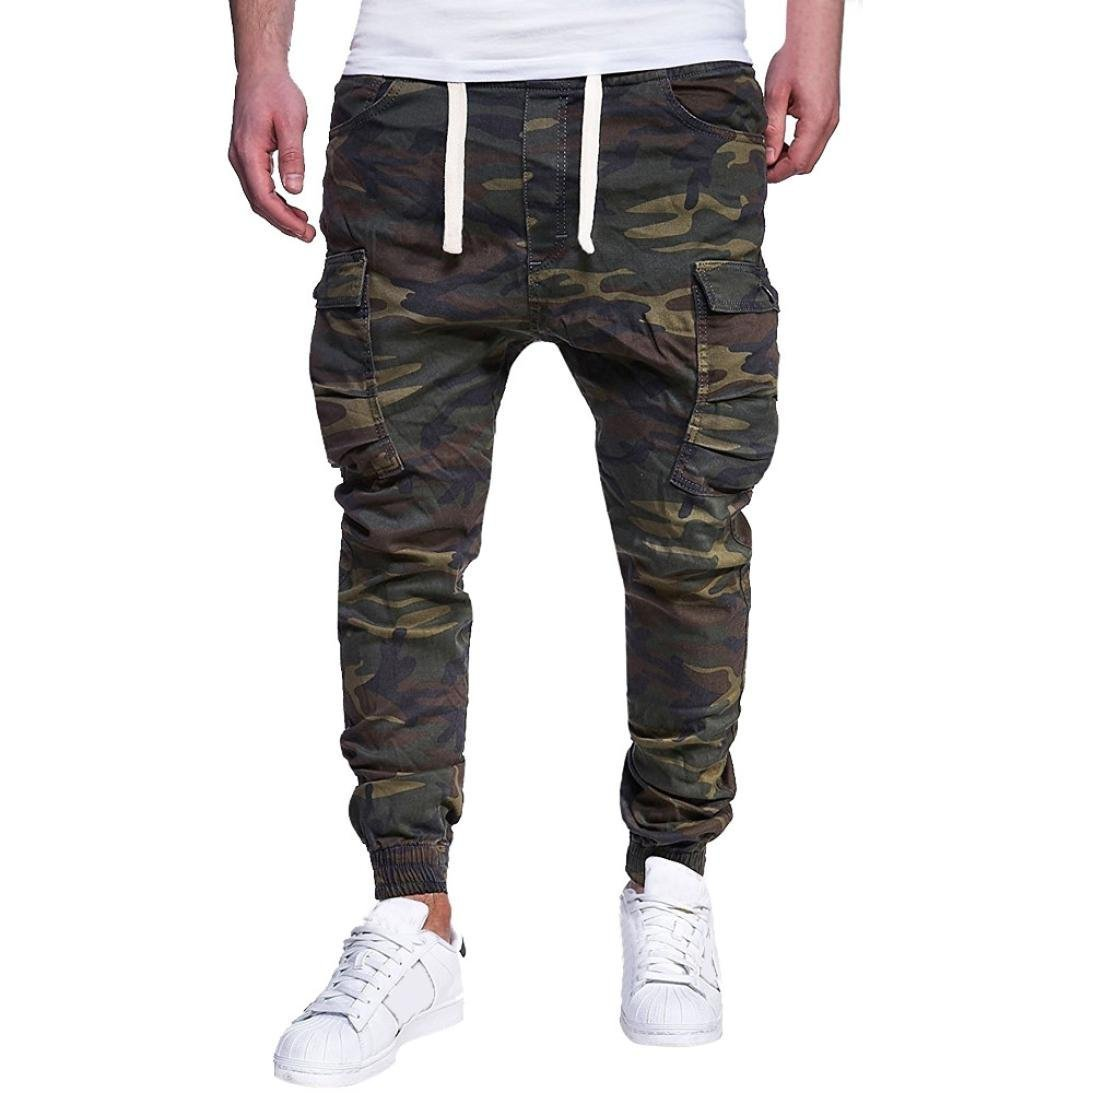 HTHJSCO Men's Slim Fit Cotton Twill Chino Jogger Pants, Men's Sport Camouflage Lashing Belts Casual Loose Sweatpants (Army Green, XL) by HTHJSCO